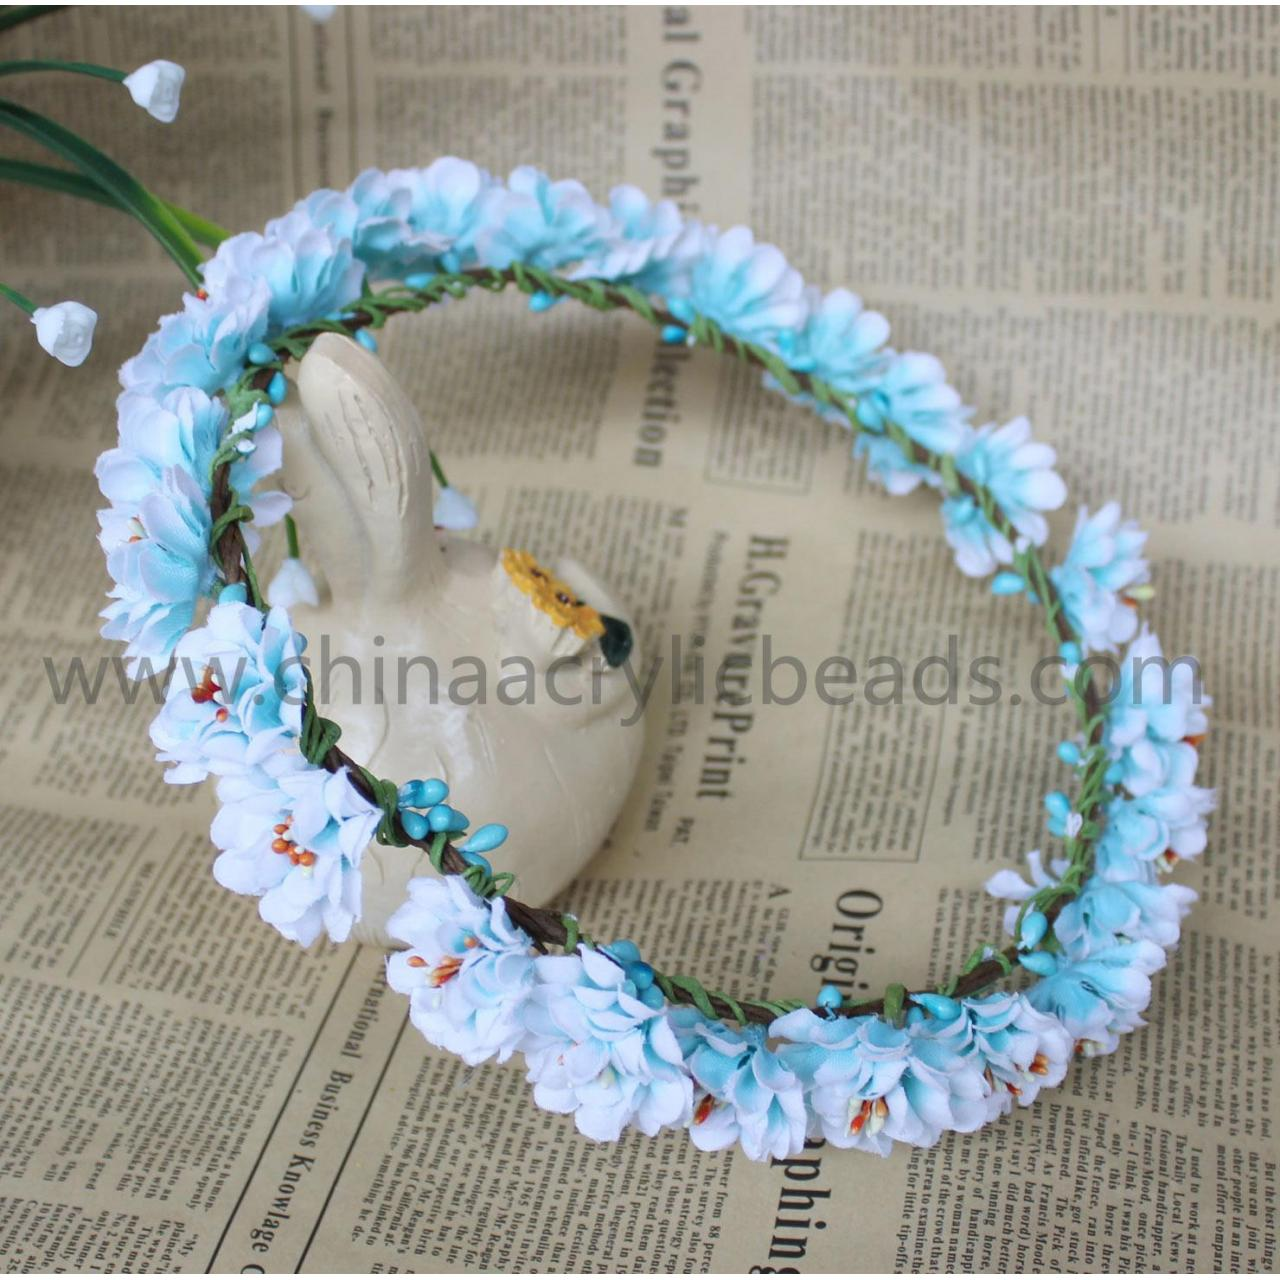 Buy cheap wholesale Fashion Flower Headband Artificial Flowe--FHC022 from wholesalers